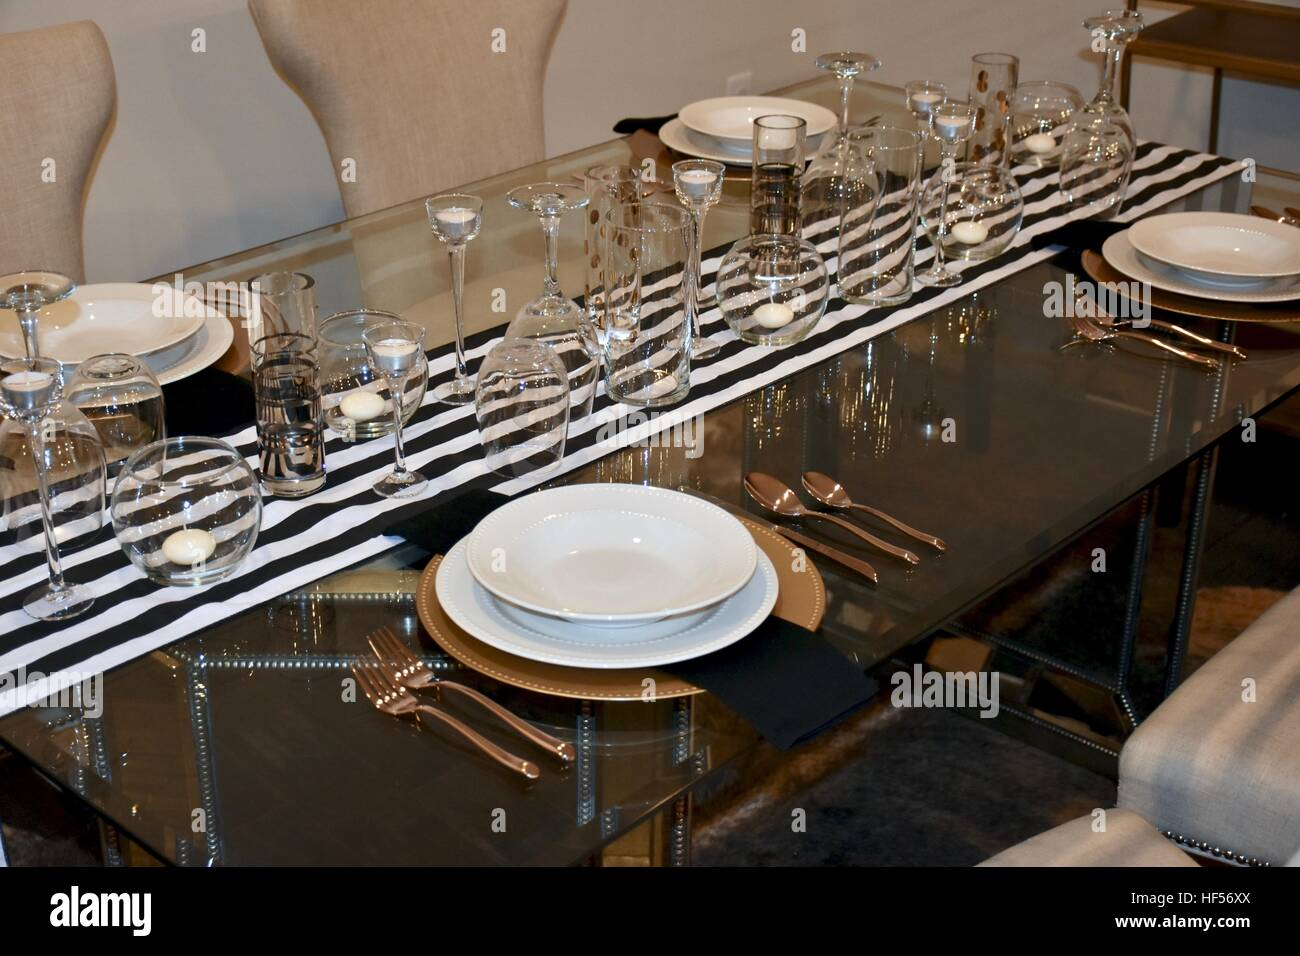 An elegant dinner set up prepared on a beautiful glass table for a ...